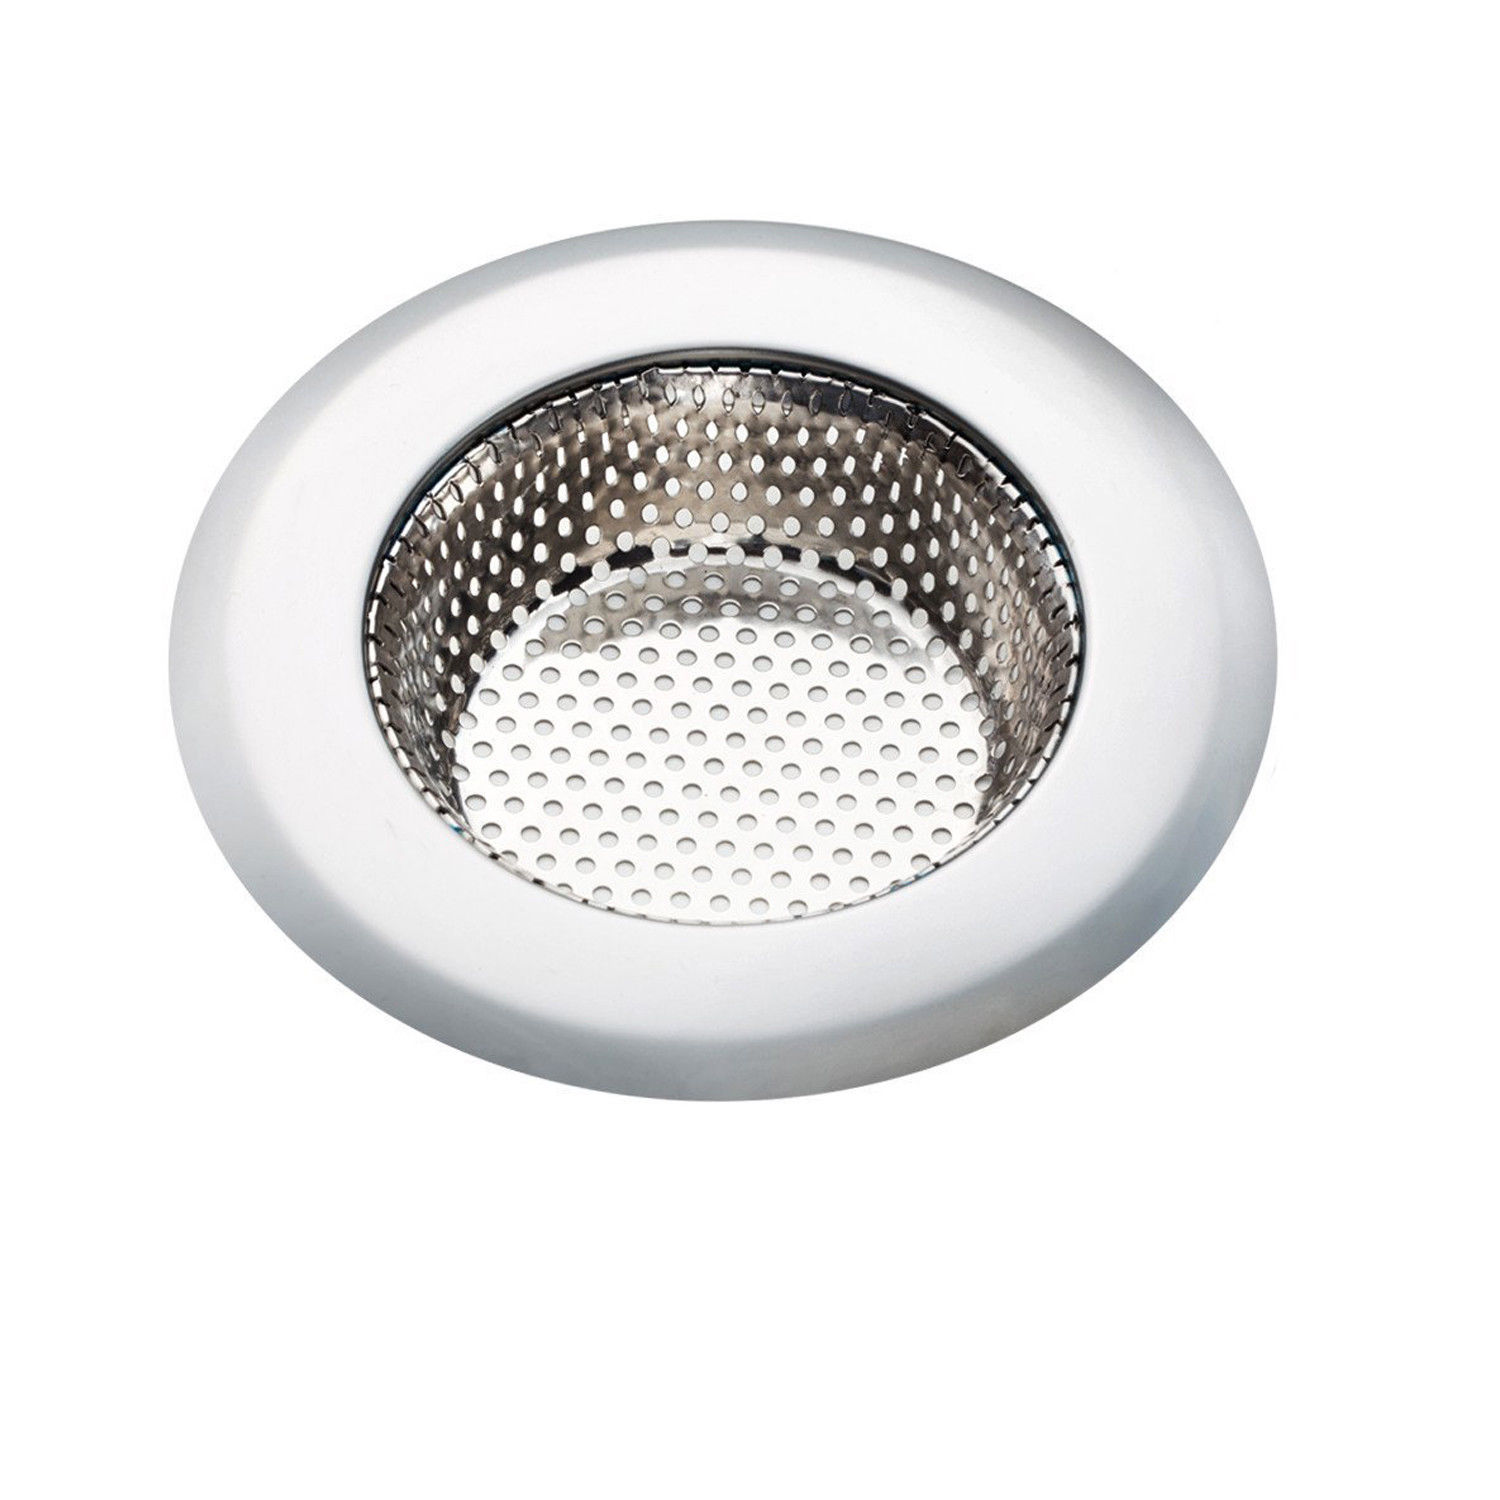 """EEEKit Kitchen Sink Strainer, Stainless Steel Screen Mesh Basket Cover Catcher/Stopper Prevent Clogged Drains for   Kitchen Shower & Utility Rooms, Drain Fliter Strainer Large Wide 4.3"""""""